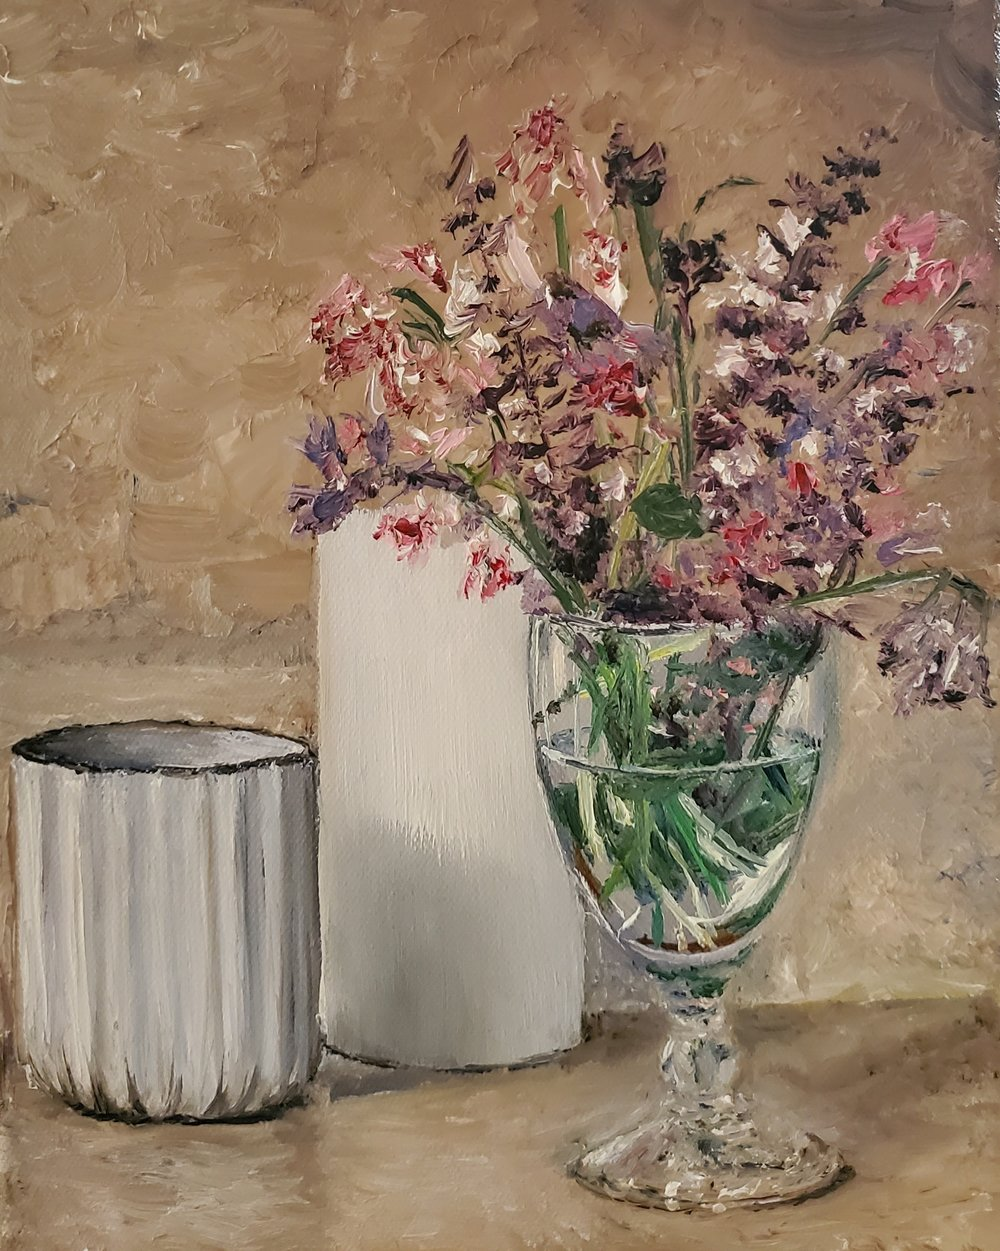 Still Life with Flowers; oil on canvas; 2019